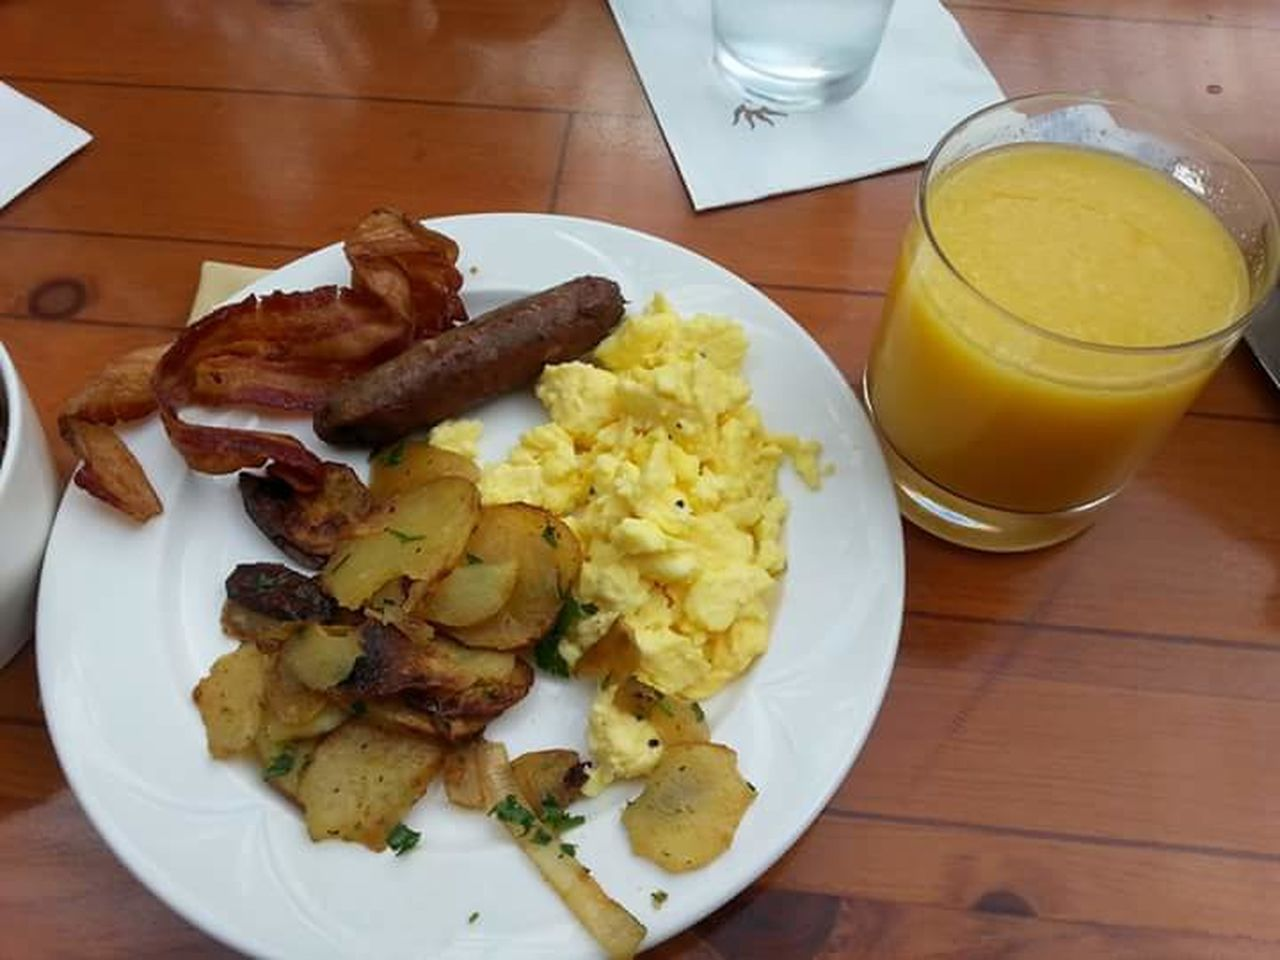 Breakfast Hotel Breakfast Eggs... Sausage Potatoes Orange Juice  Delicious Oprylandresort Bacon!